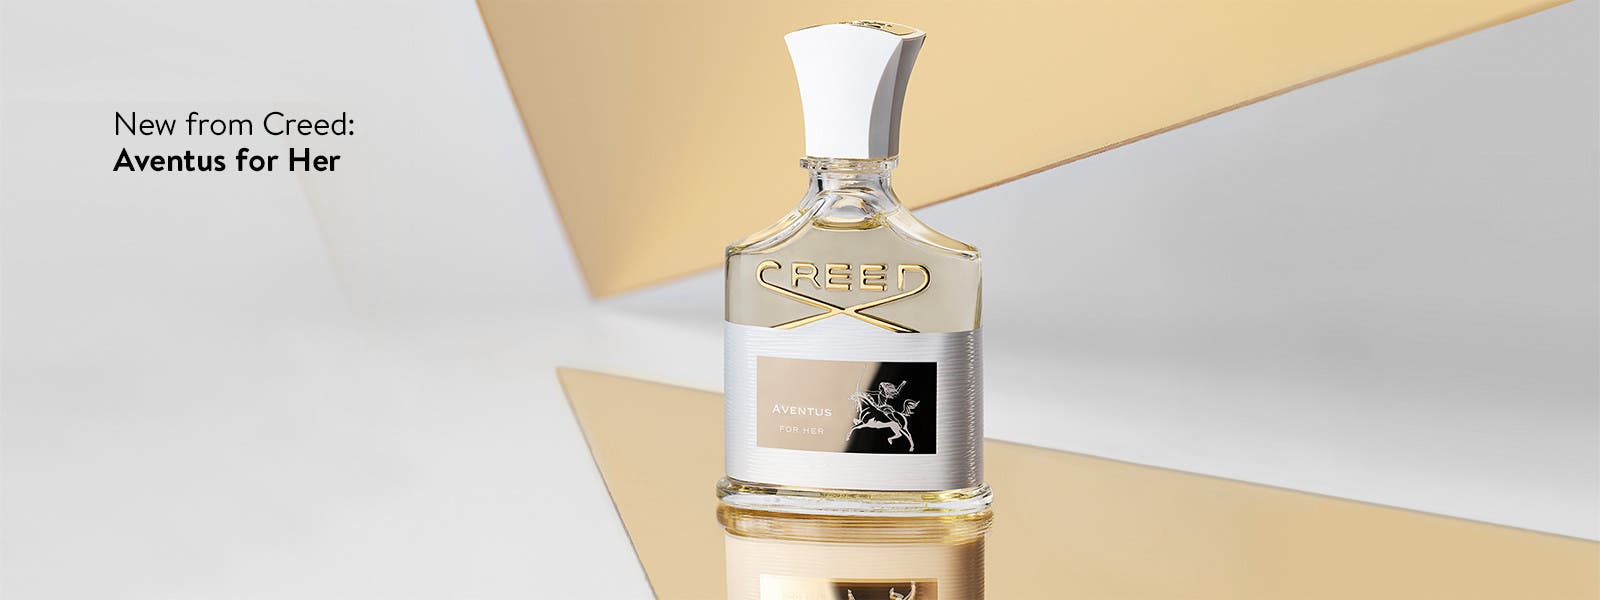 New from Creed: Aventus for Her.